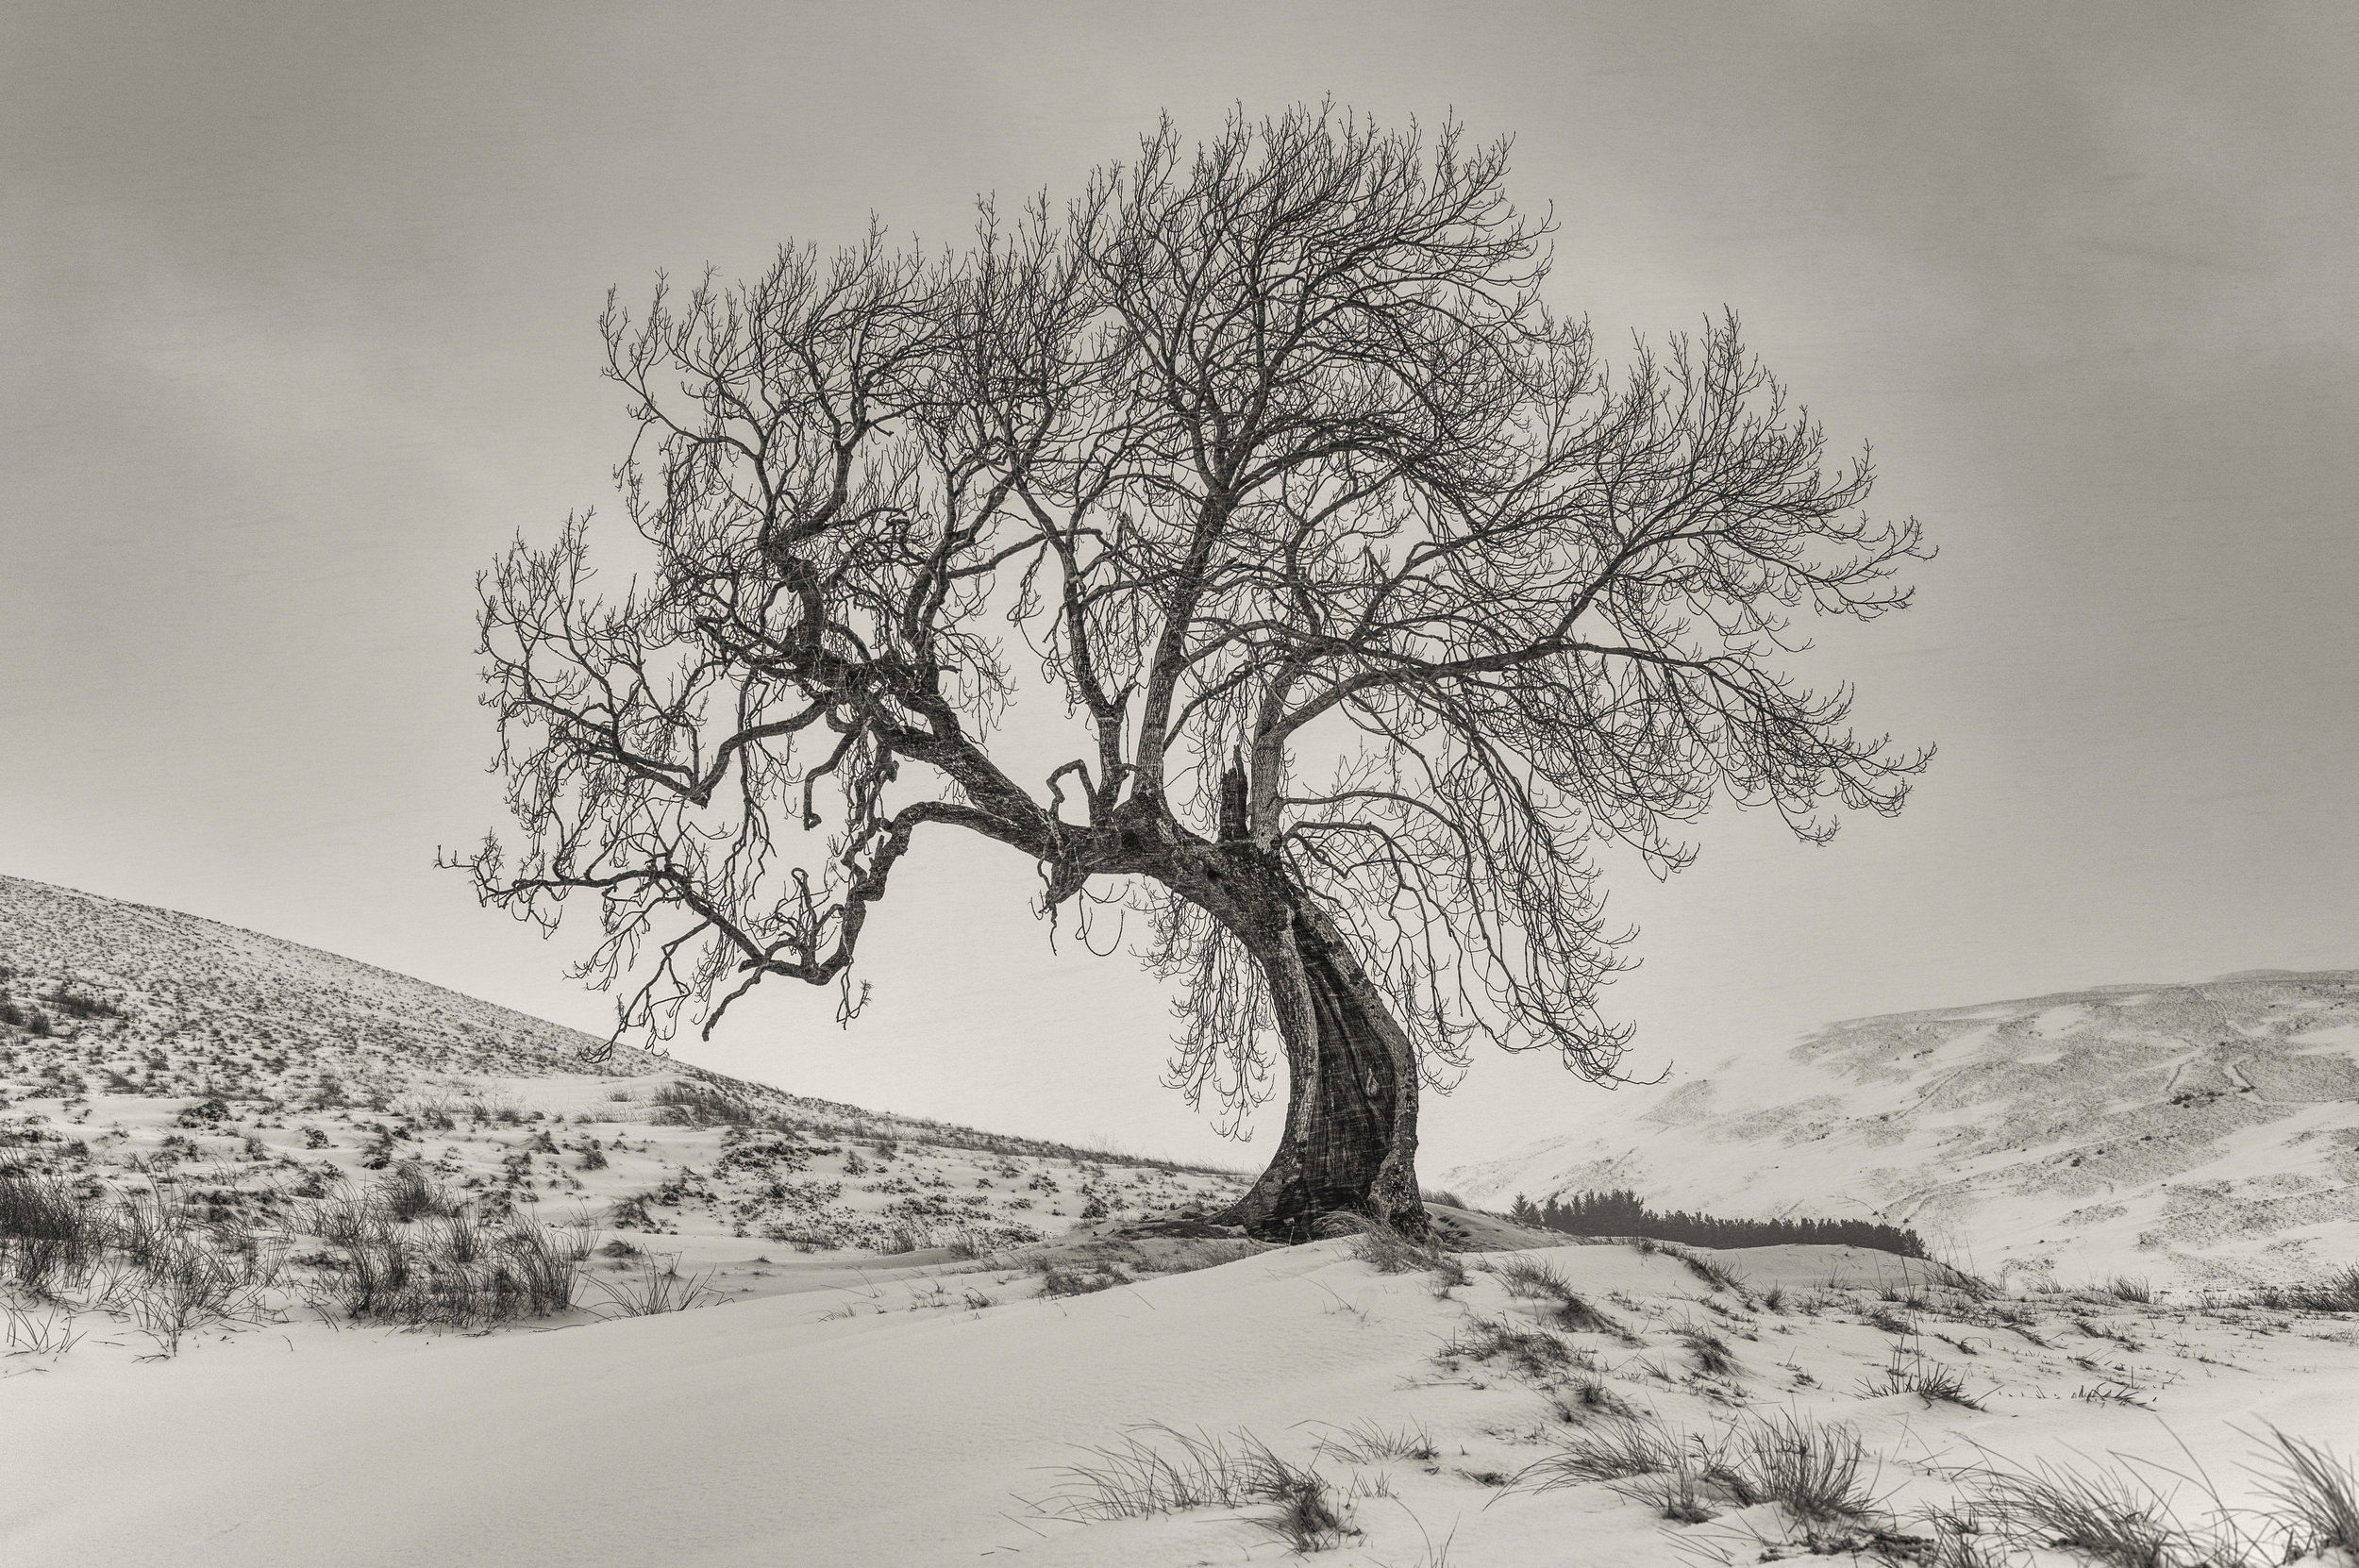 The Frandy Tree by Katherine Fotheringham